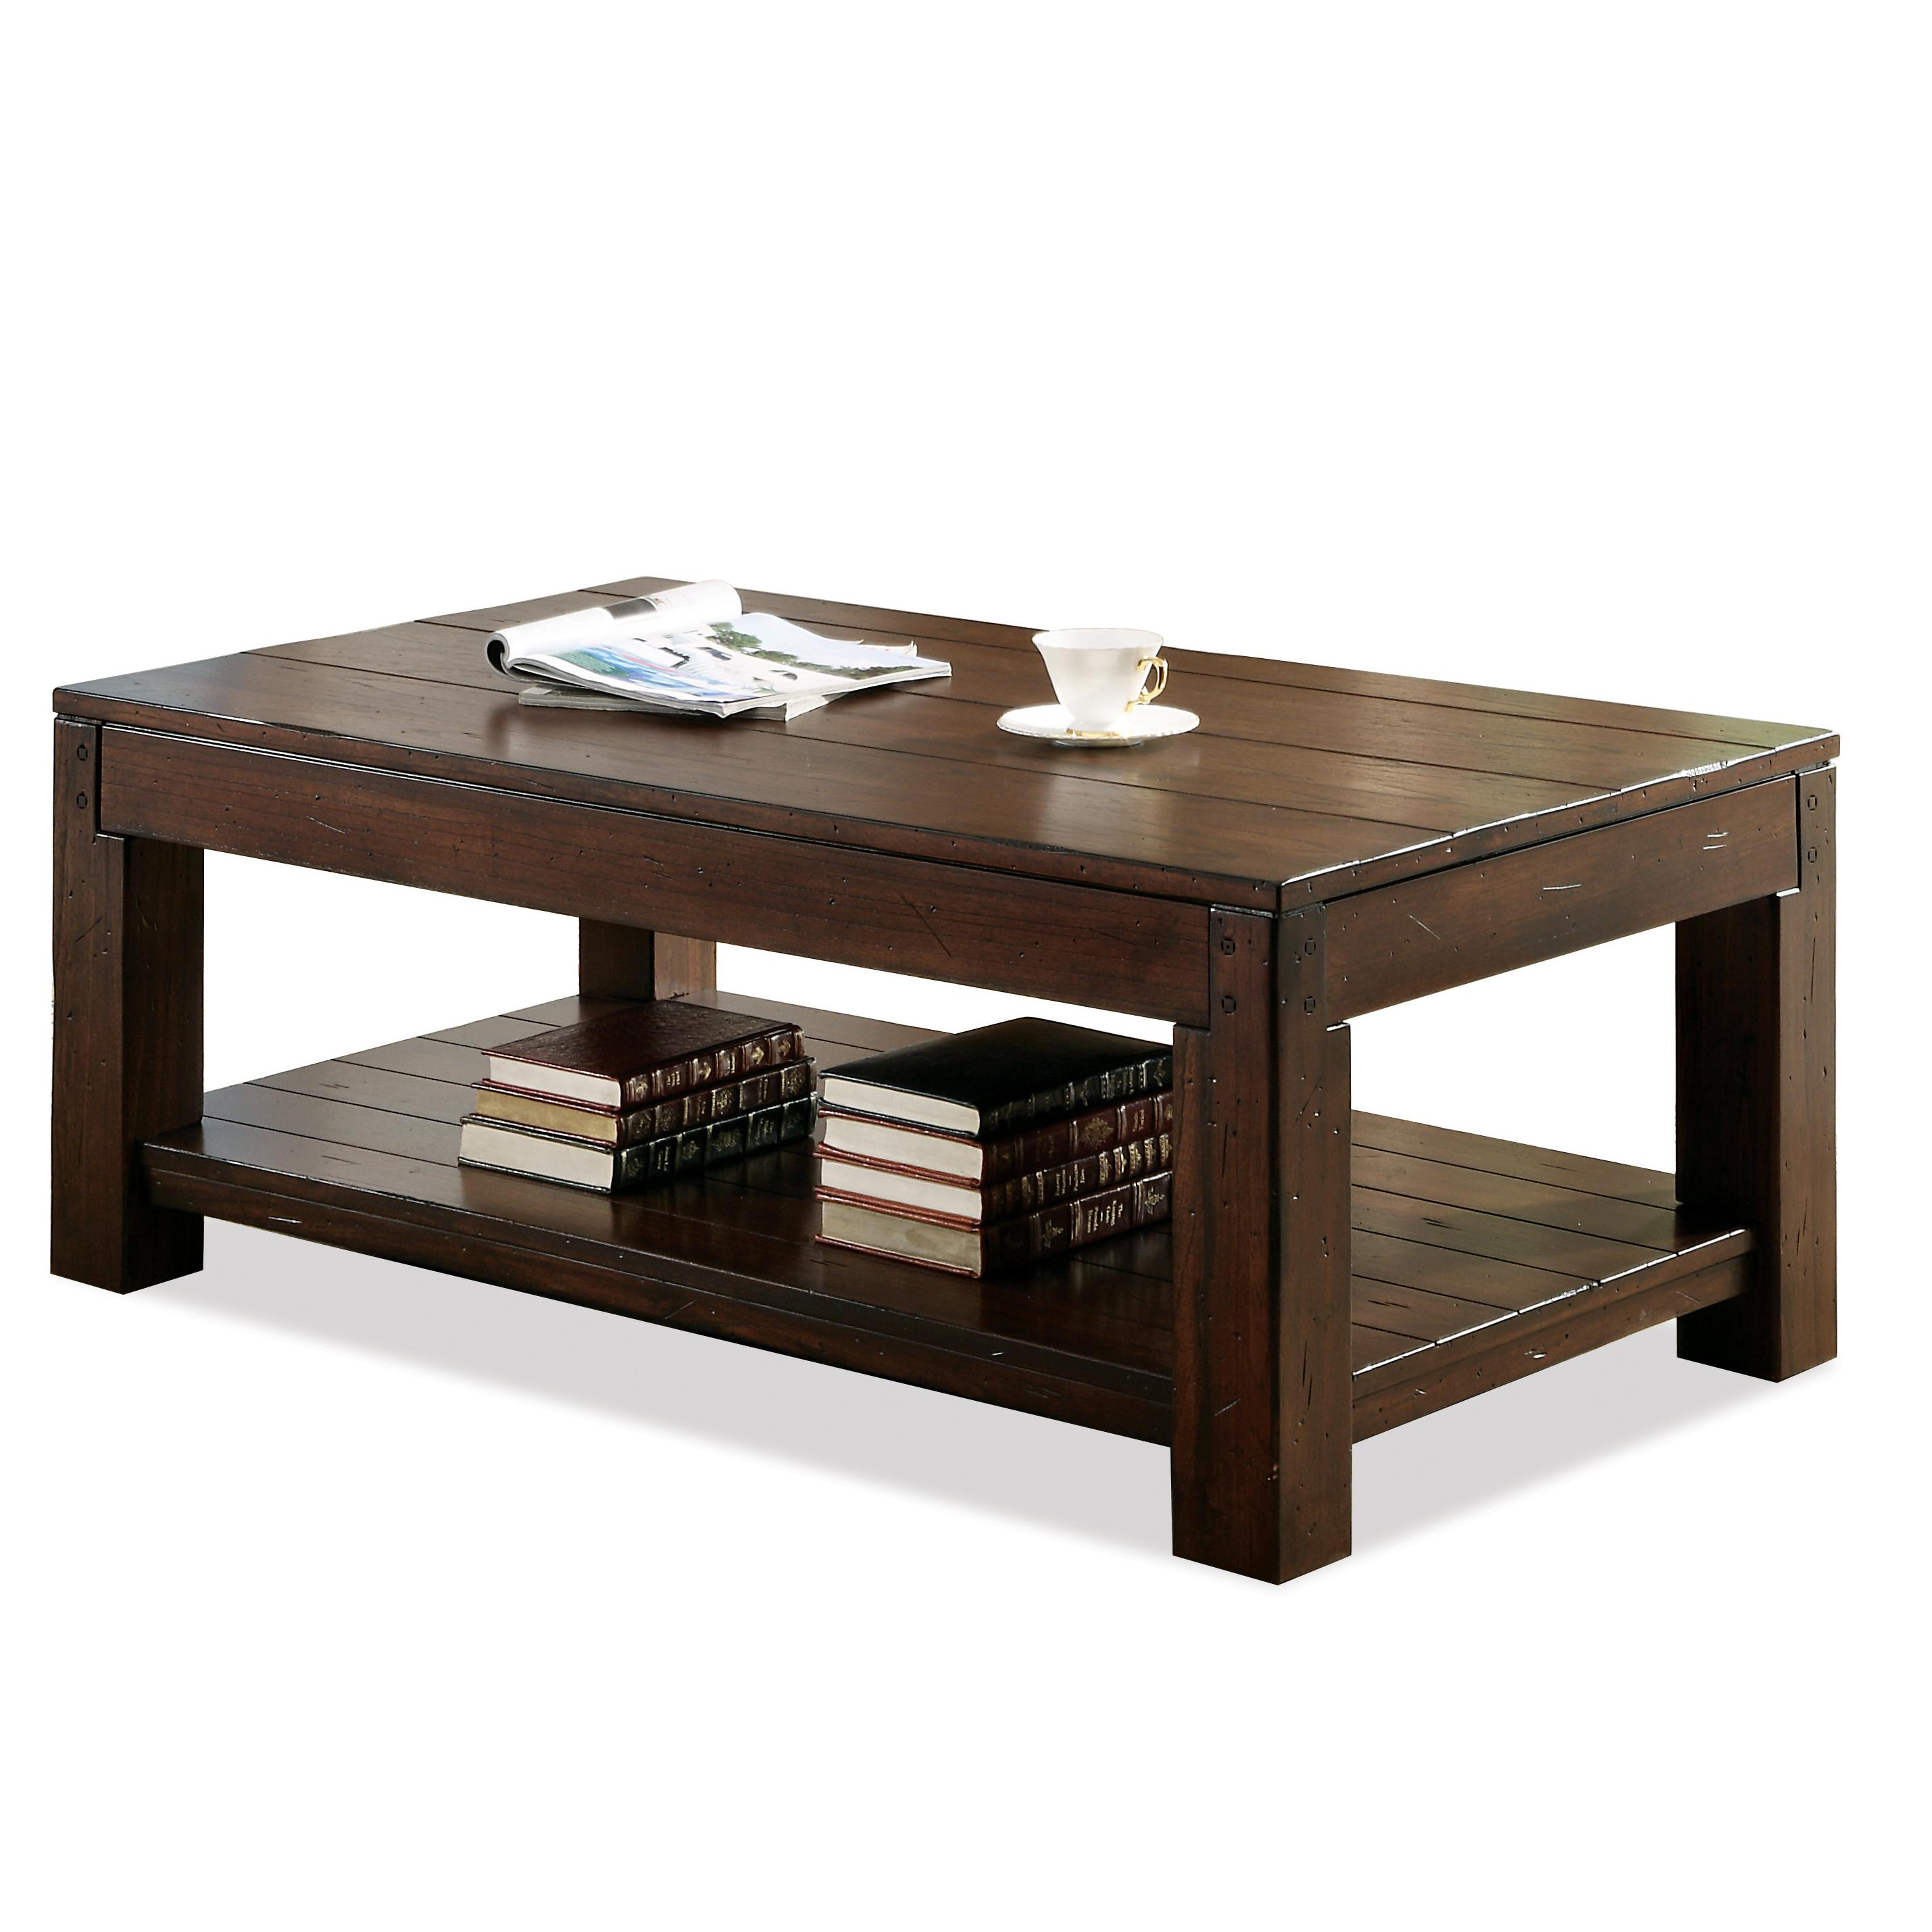 Rectangular Coffee Table with Fixed Lower Shelf and Block Legs by